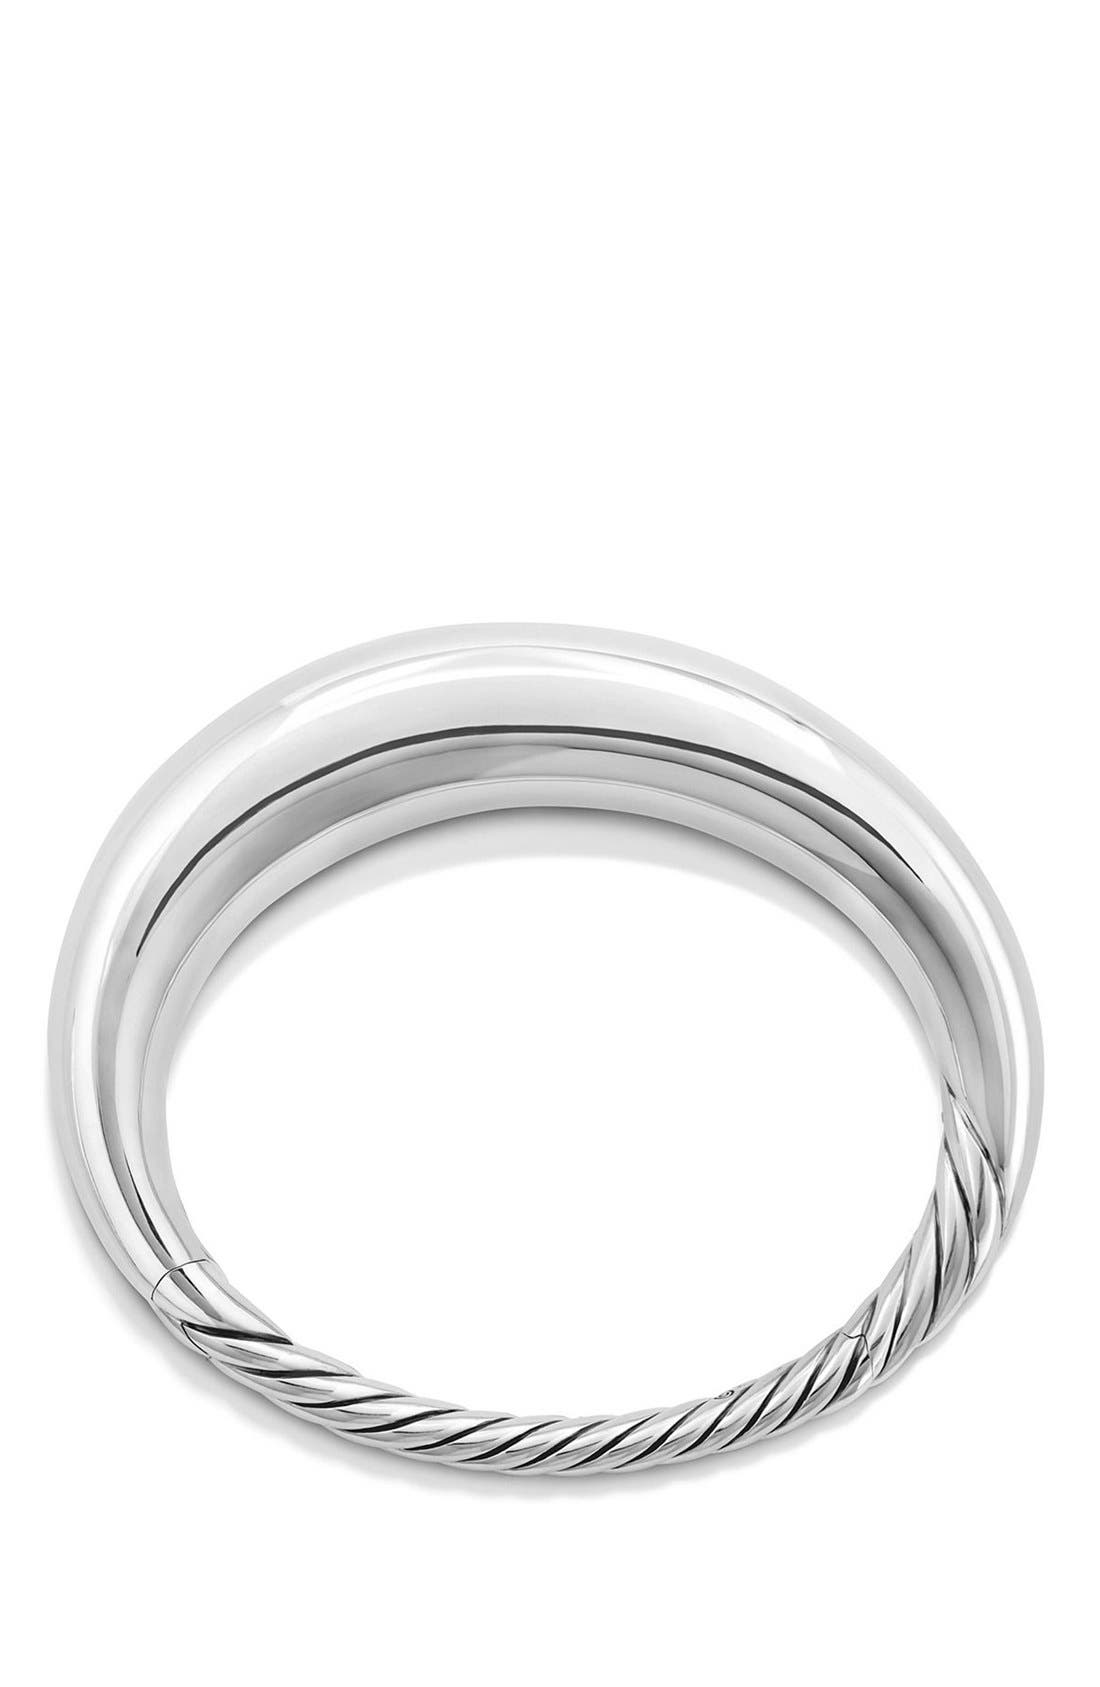 Alternate Image 2  - David Yurman 'Pure Form' Large Sterling Silver Bracelet